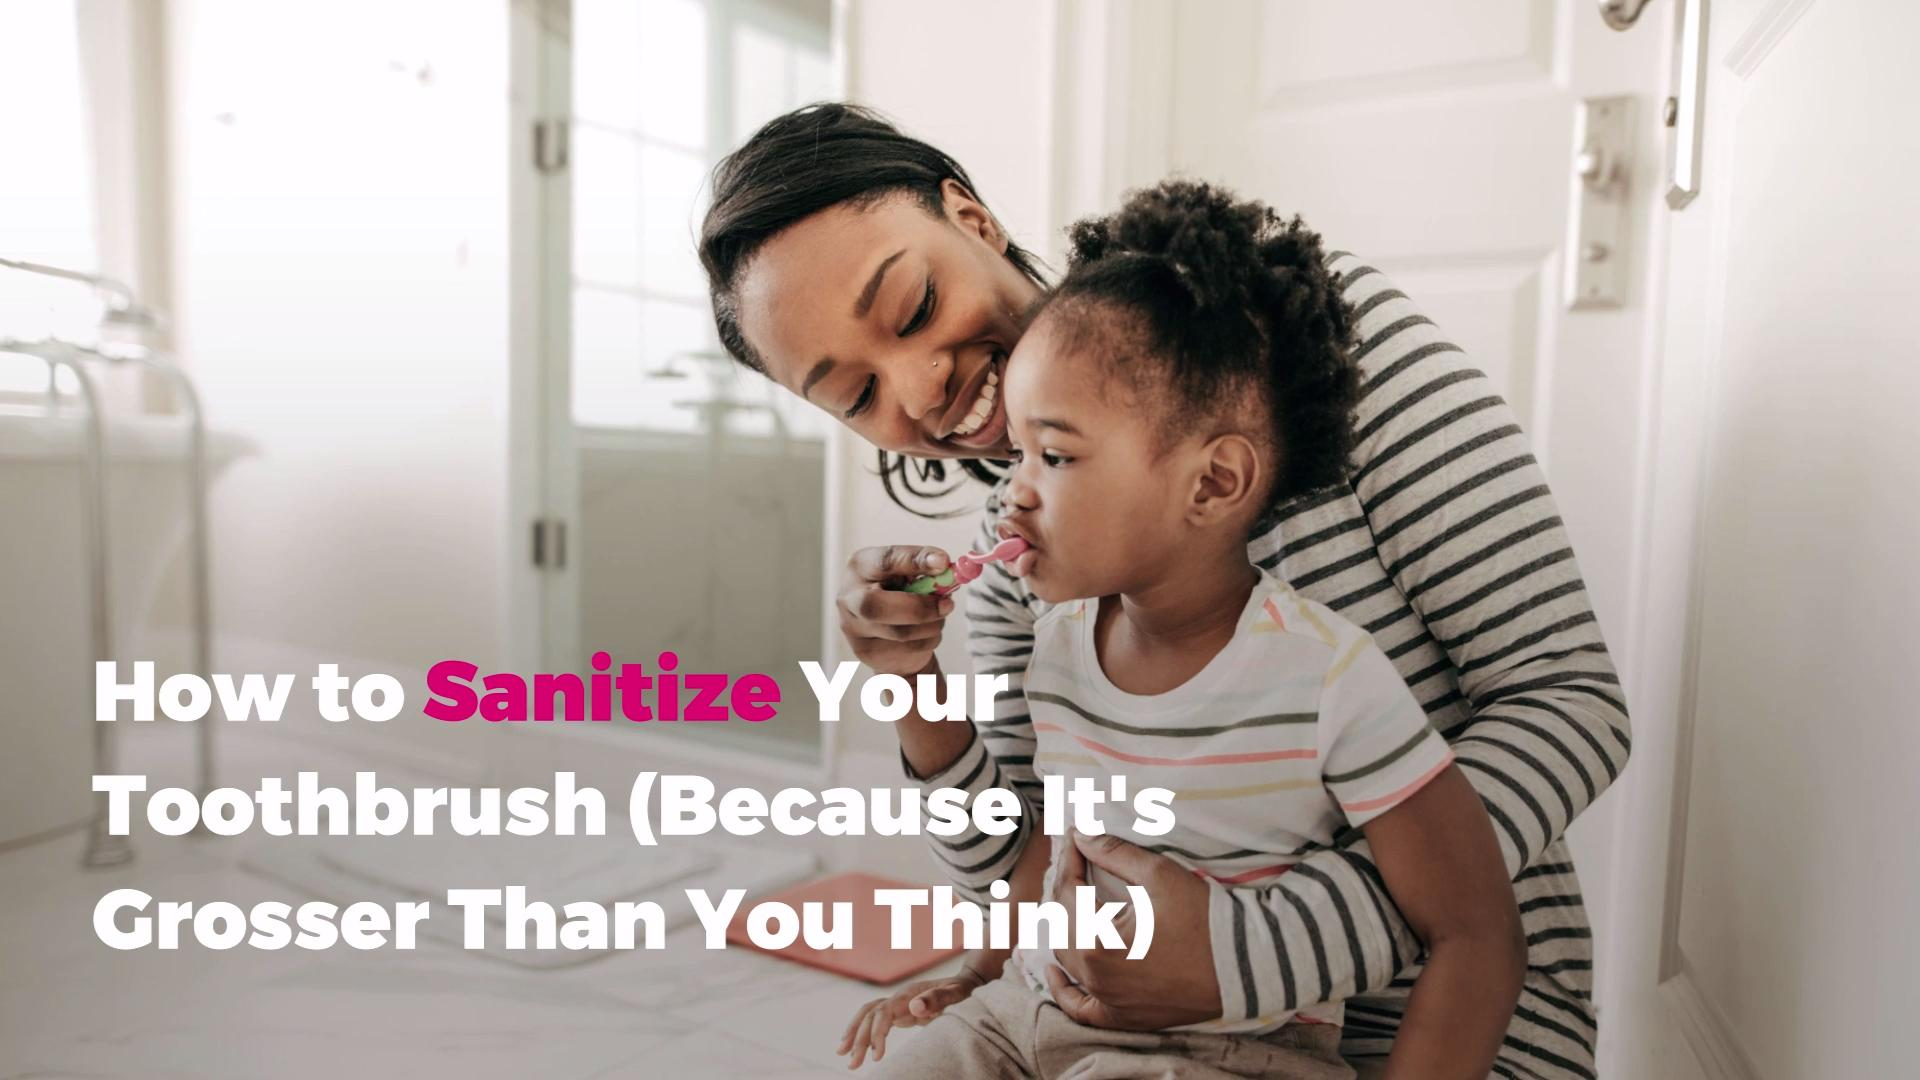 How to Sanitize Your Toothbrush (Because It's Grosser Than You Think)